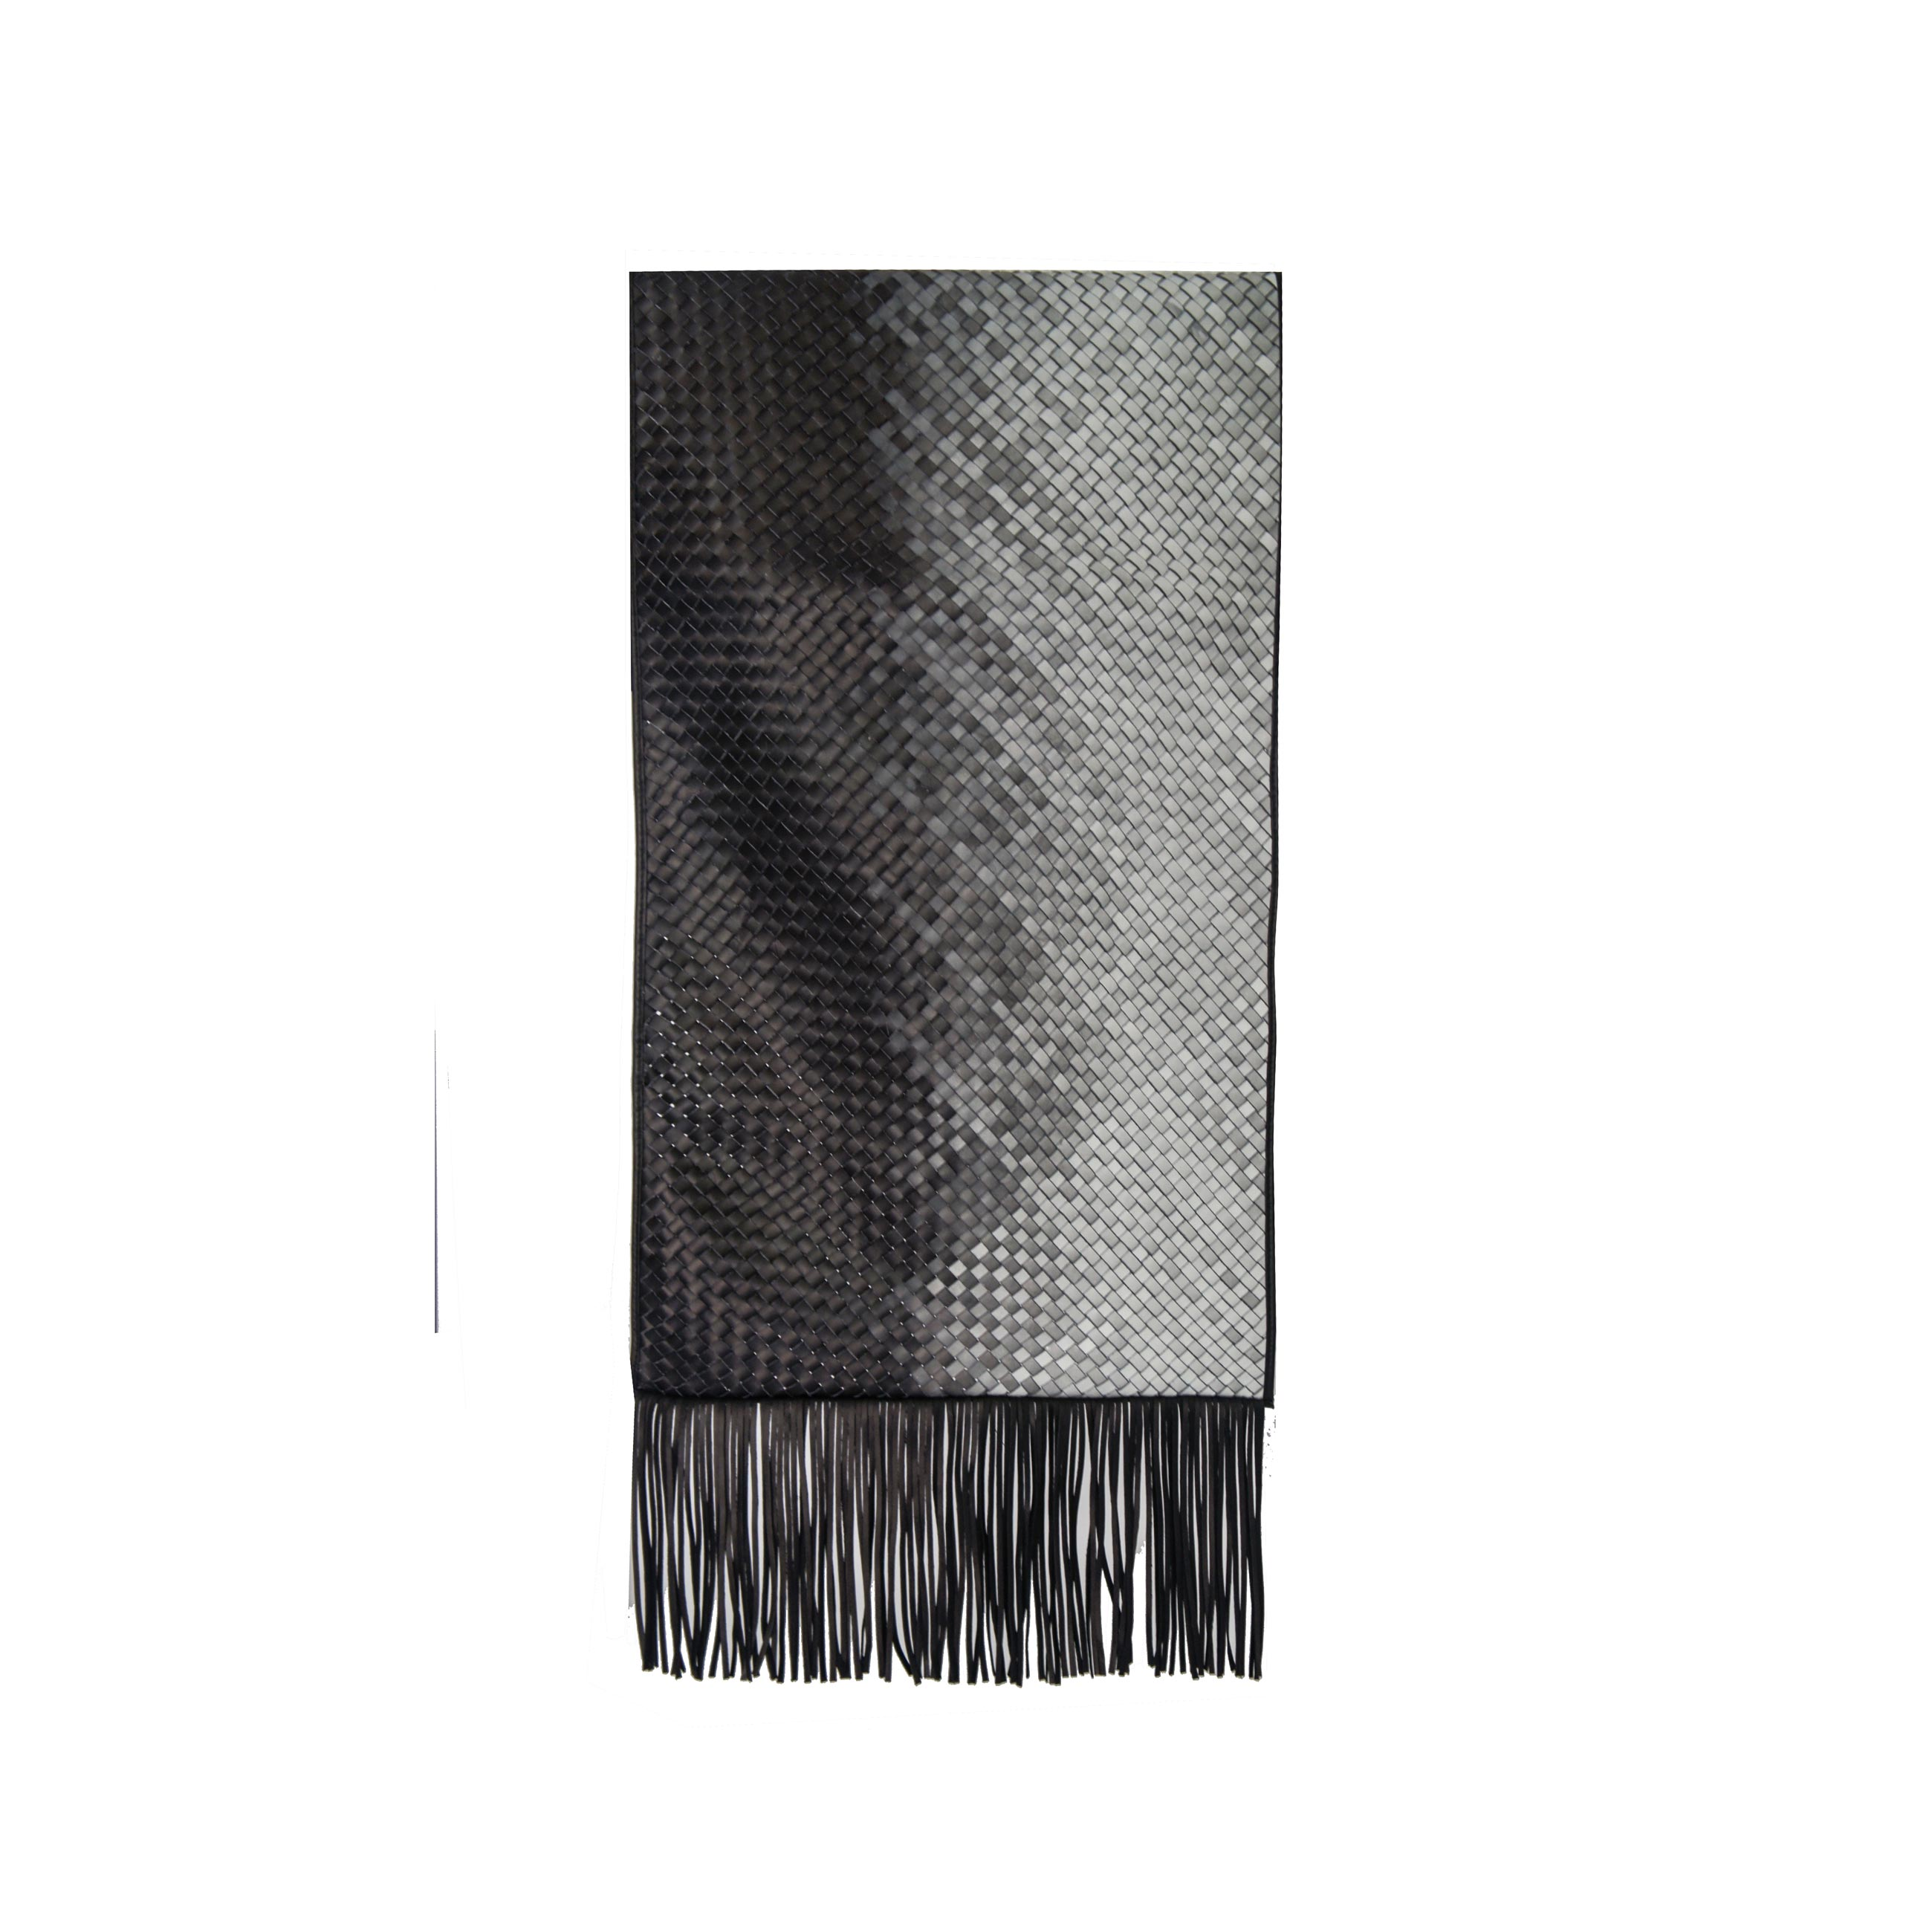 Mosaico Degrade Woven Leather Throw - <p>The Mosaico Degrade Woven Leather Throw is designed to complement an ambient with a natural and sophisticated feeling. Our woven leather pieces, are handmade and manufactured in Brazil using an exclusive treated leather that brings the soft feel touch to every single piece.</p> <p>Elisa Atheniense Home Throws are available in two sizes. Bespoke sizes are also available under project request as well as colours.</p>  | Matter of Stuff